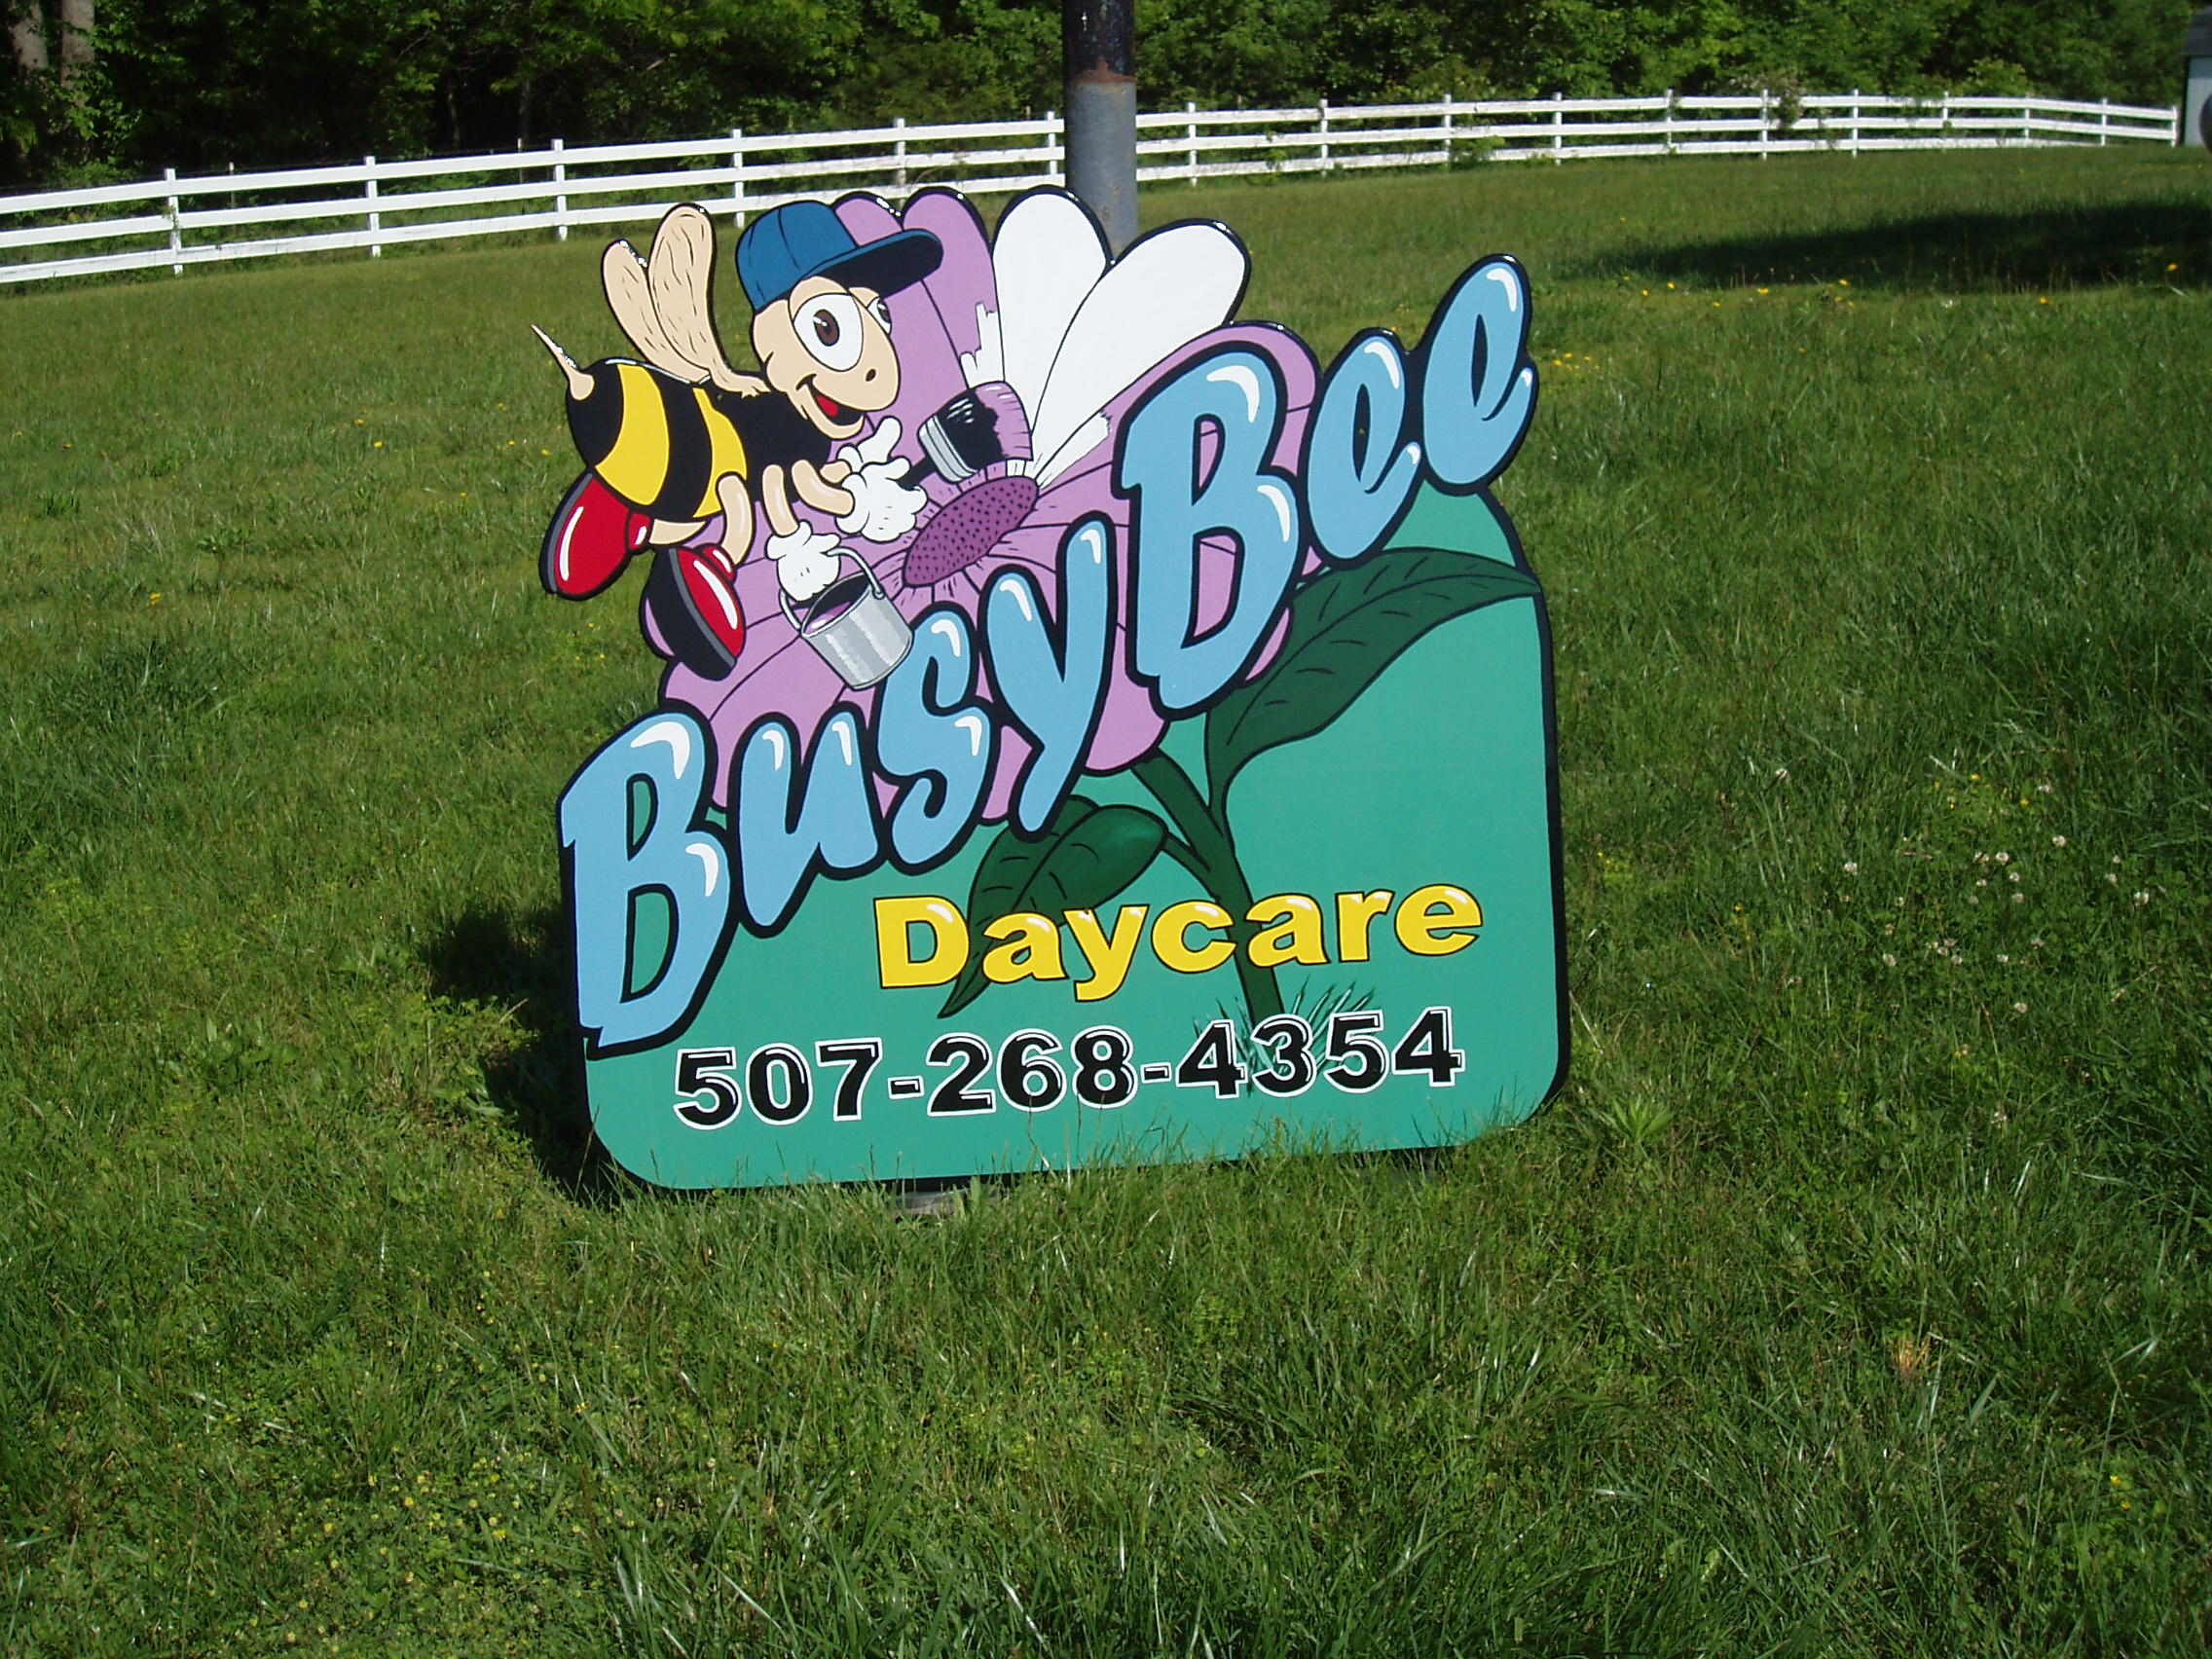 Hand Painted Signs_BusyBee Daycare minnesota.JPG